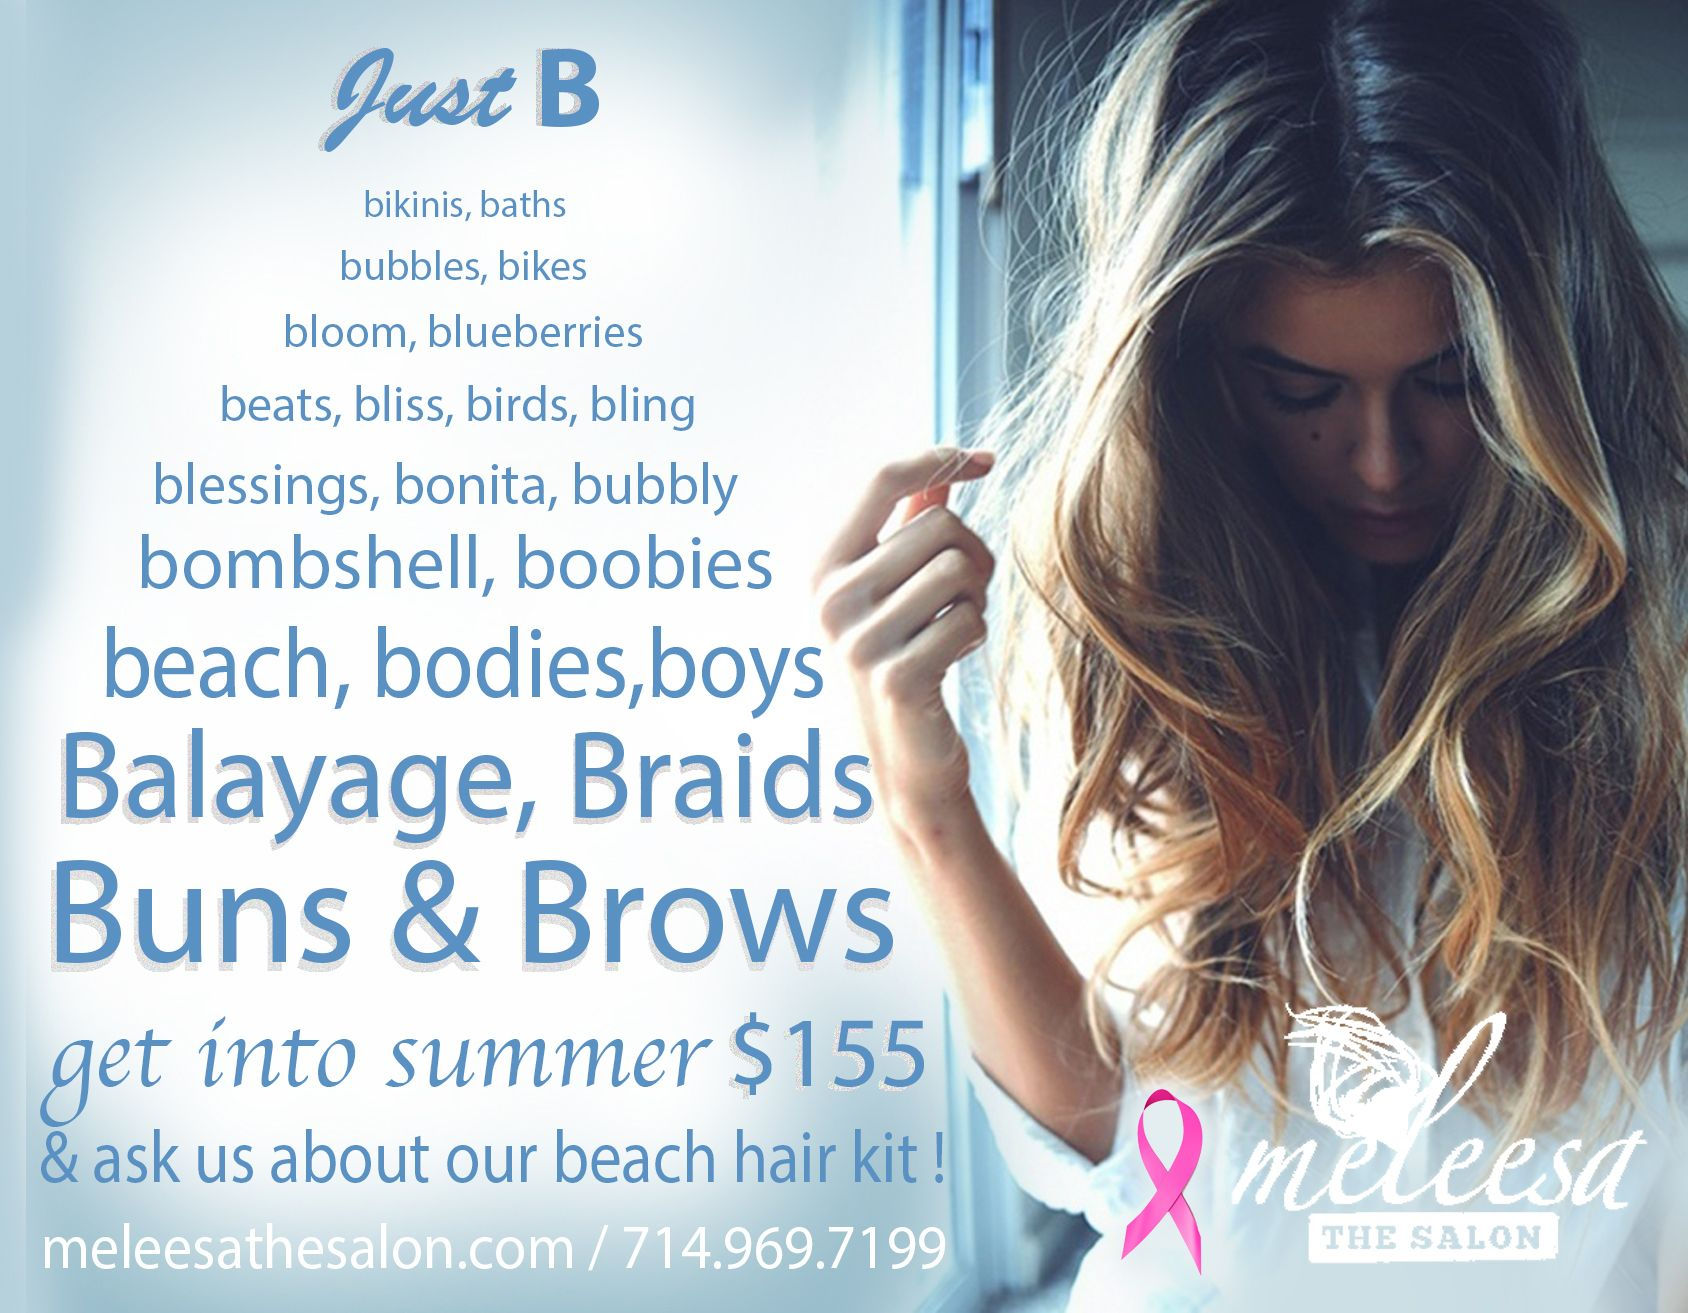 July 16 Meleesa The Salon Promotion: Get into summer with our